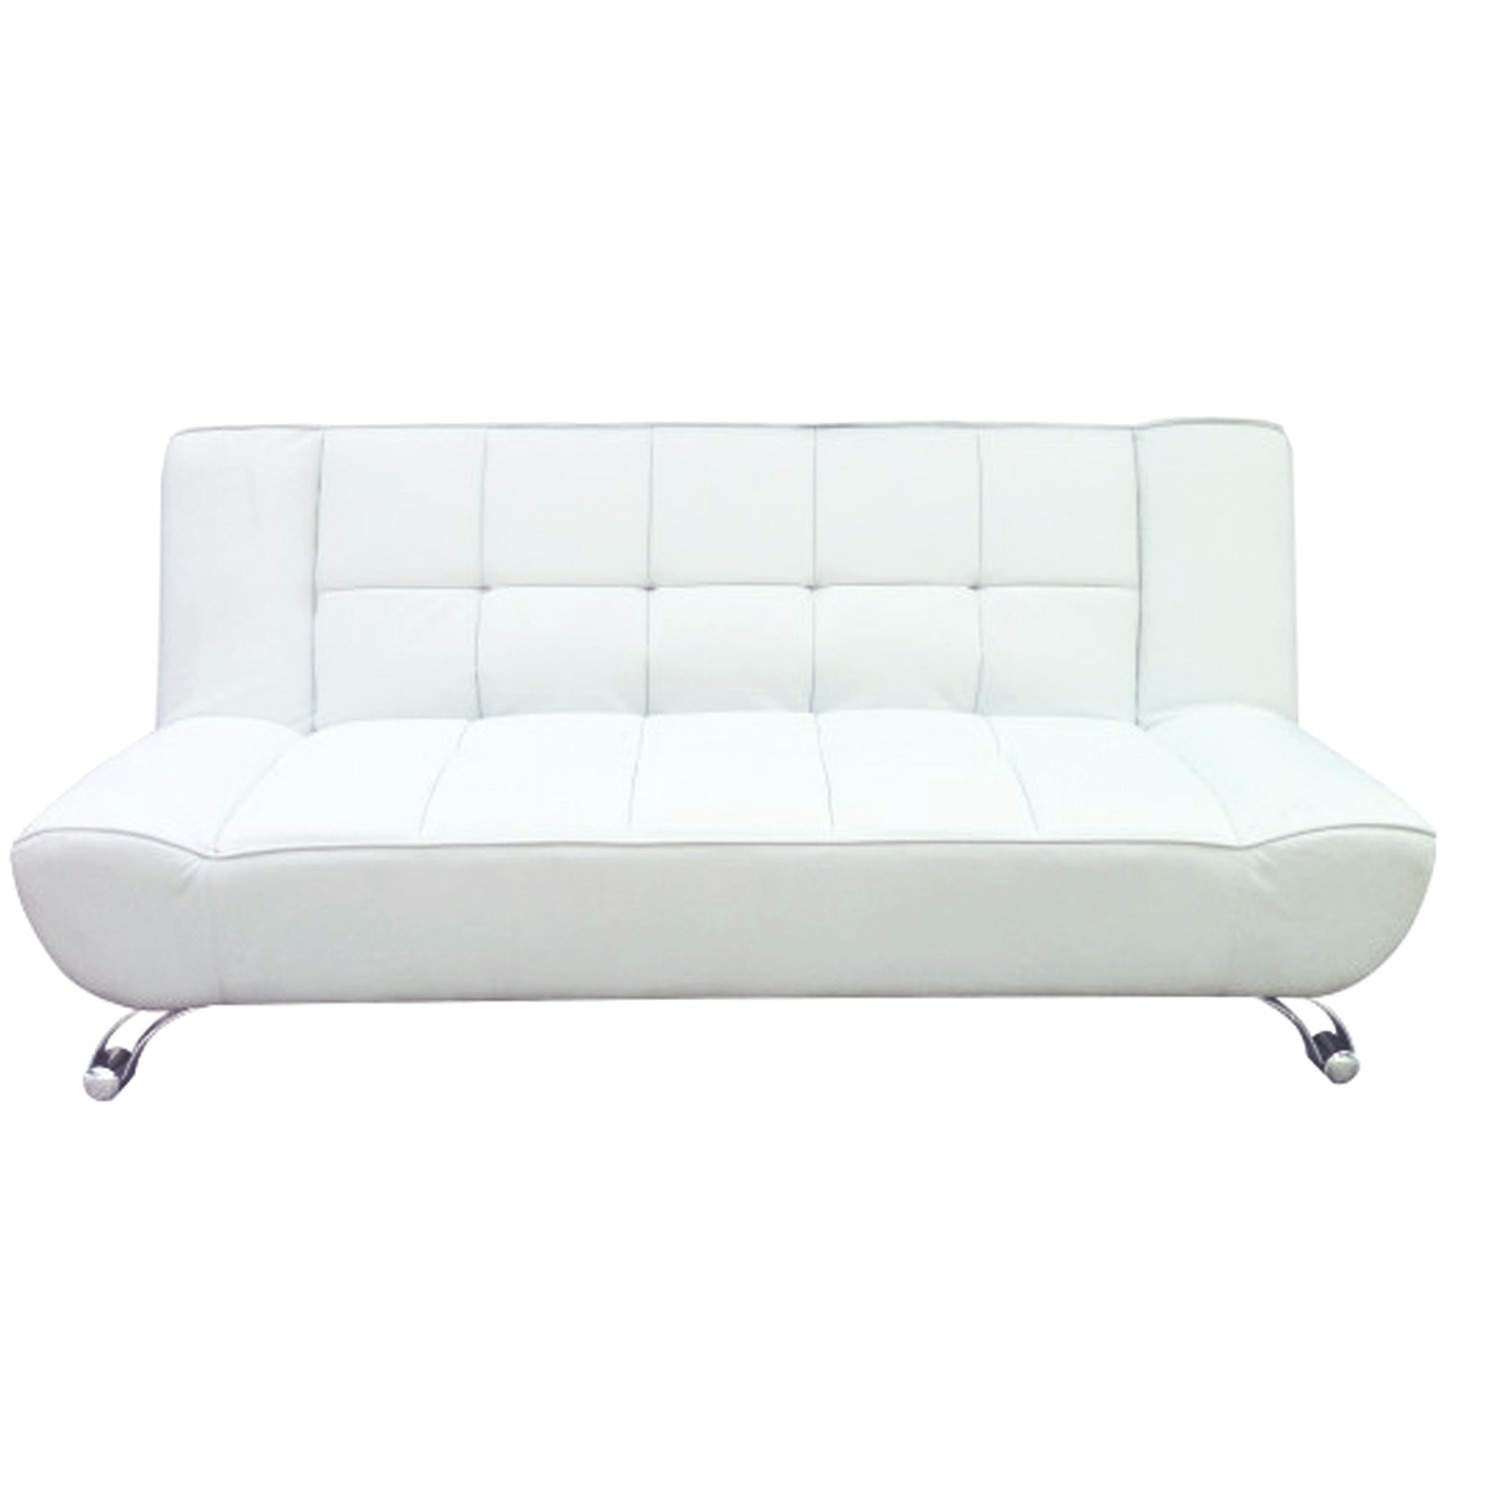 width of a sofa bed cinema ireland lpd vogue leather in white furniture123